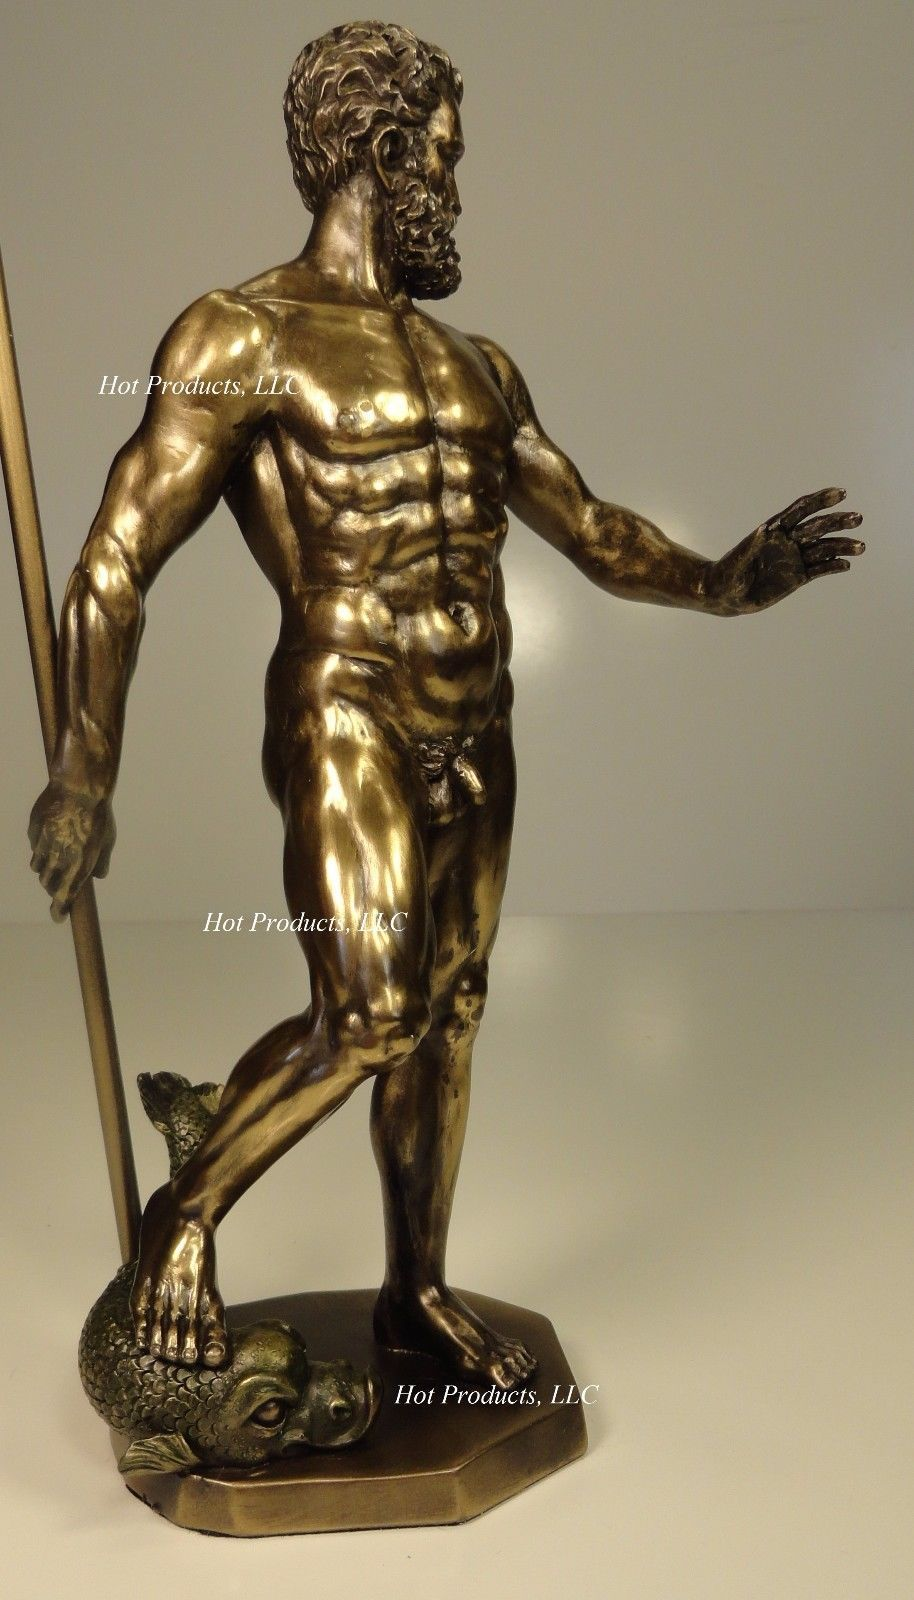 Poseidon god of sea w trident greek mythology nude male statue bronze finish people - Poseidon statue greece ...